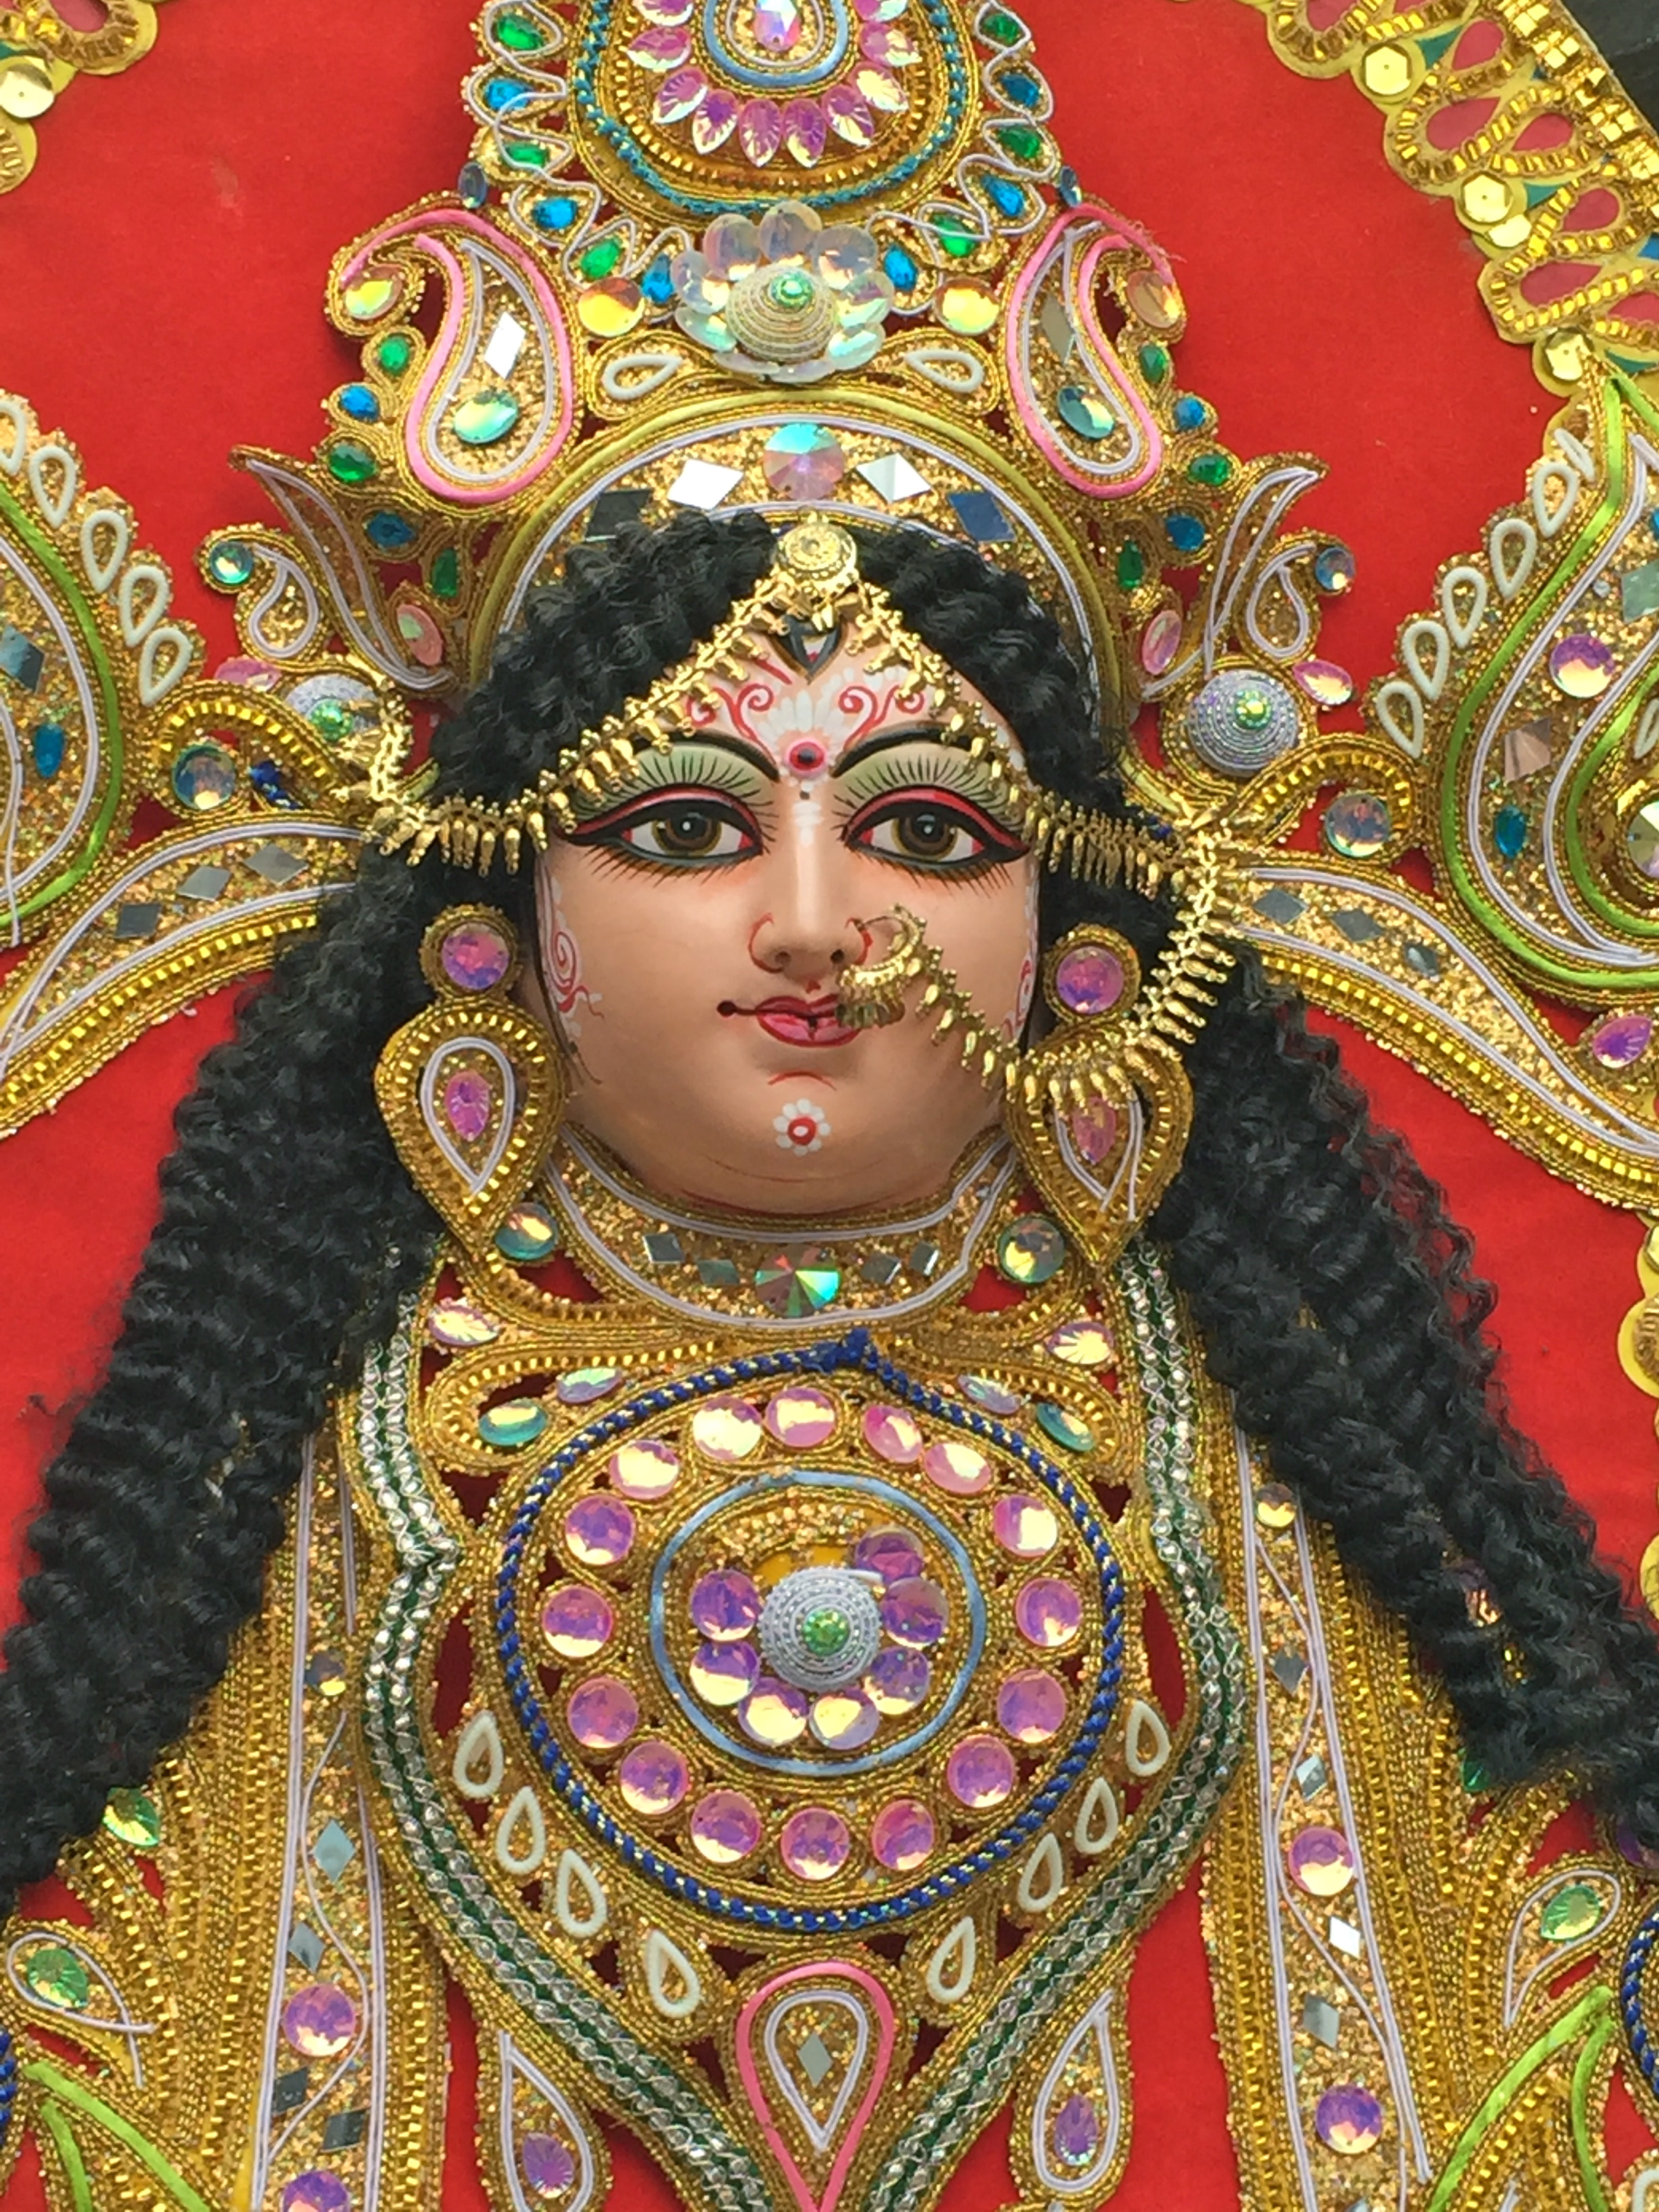 Statues and figurines are decked out in the most brilliant colors and jewels.